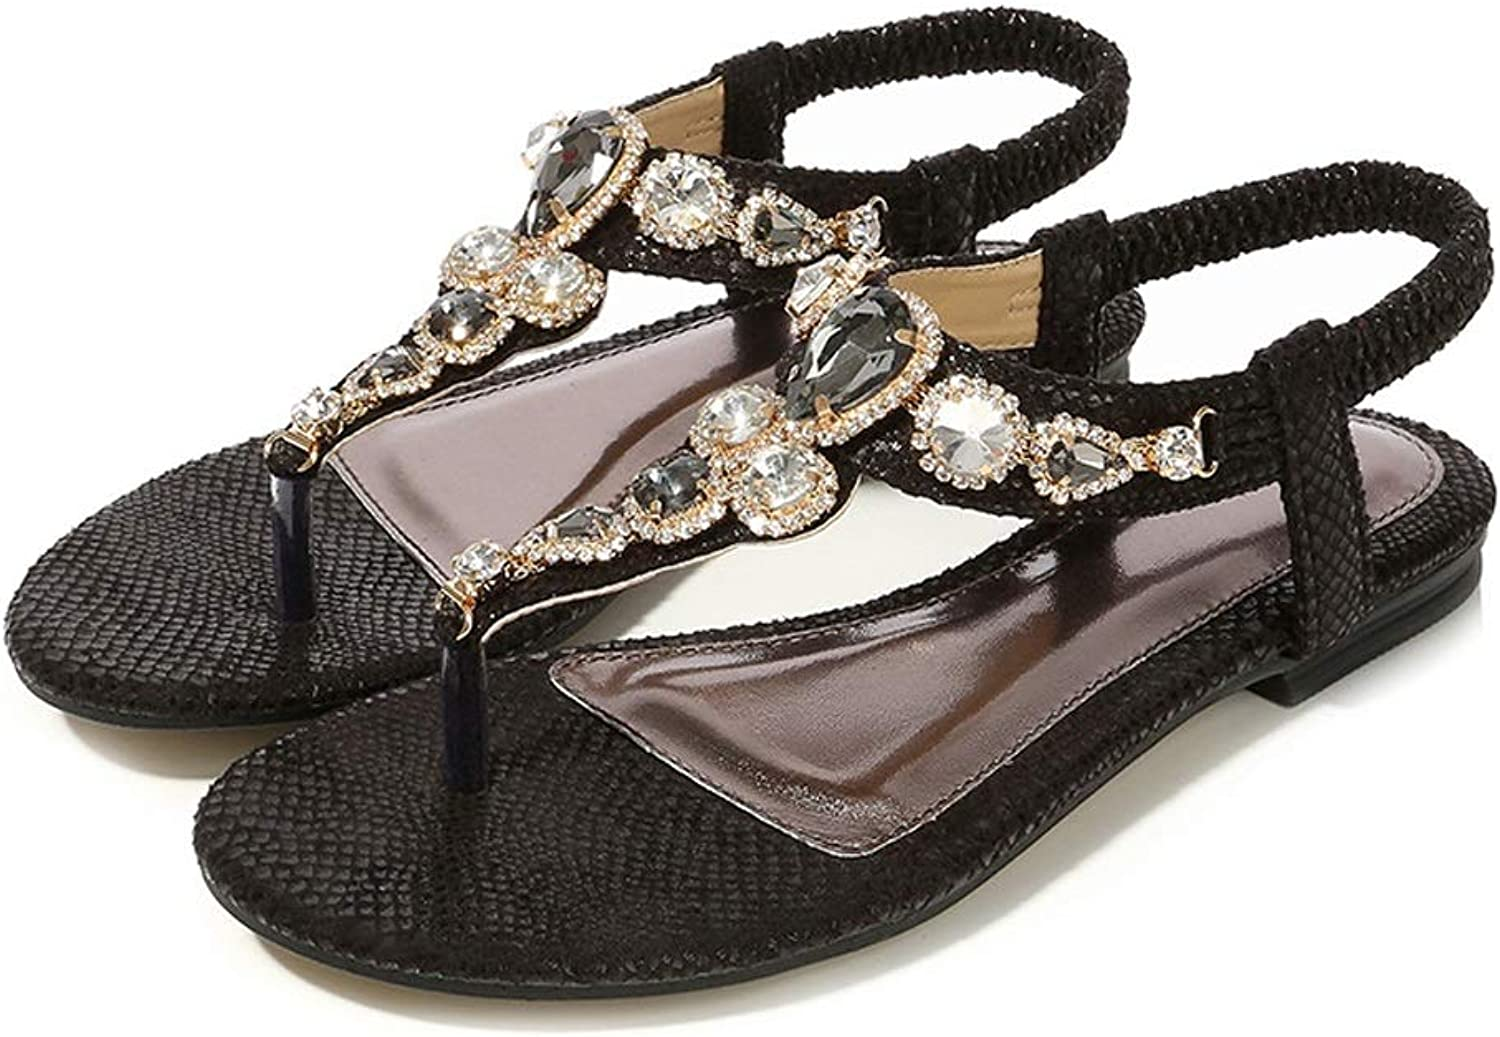 ZHAO YELONG Fashion Flat Women's shoes Retro Summer Rhinestone Sandals